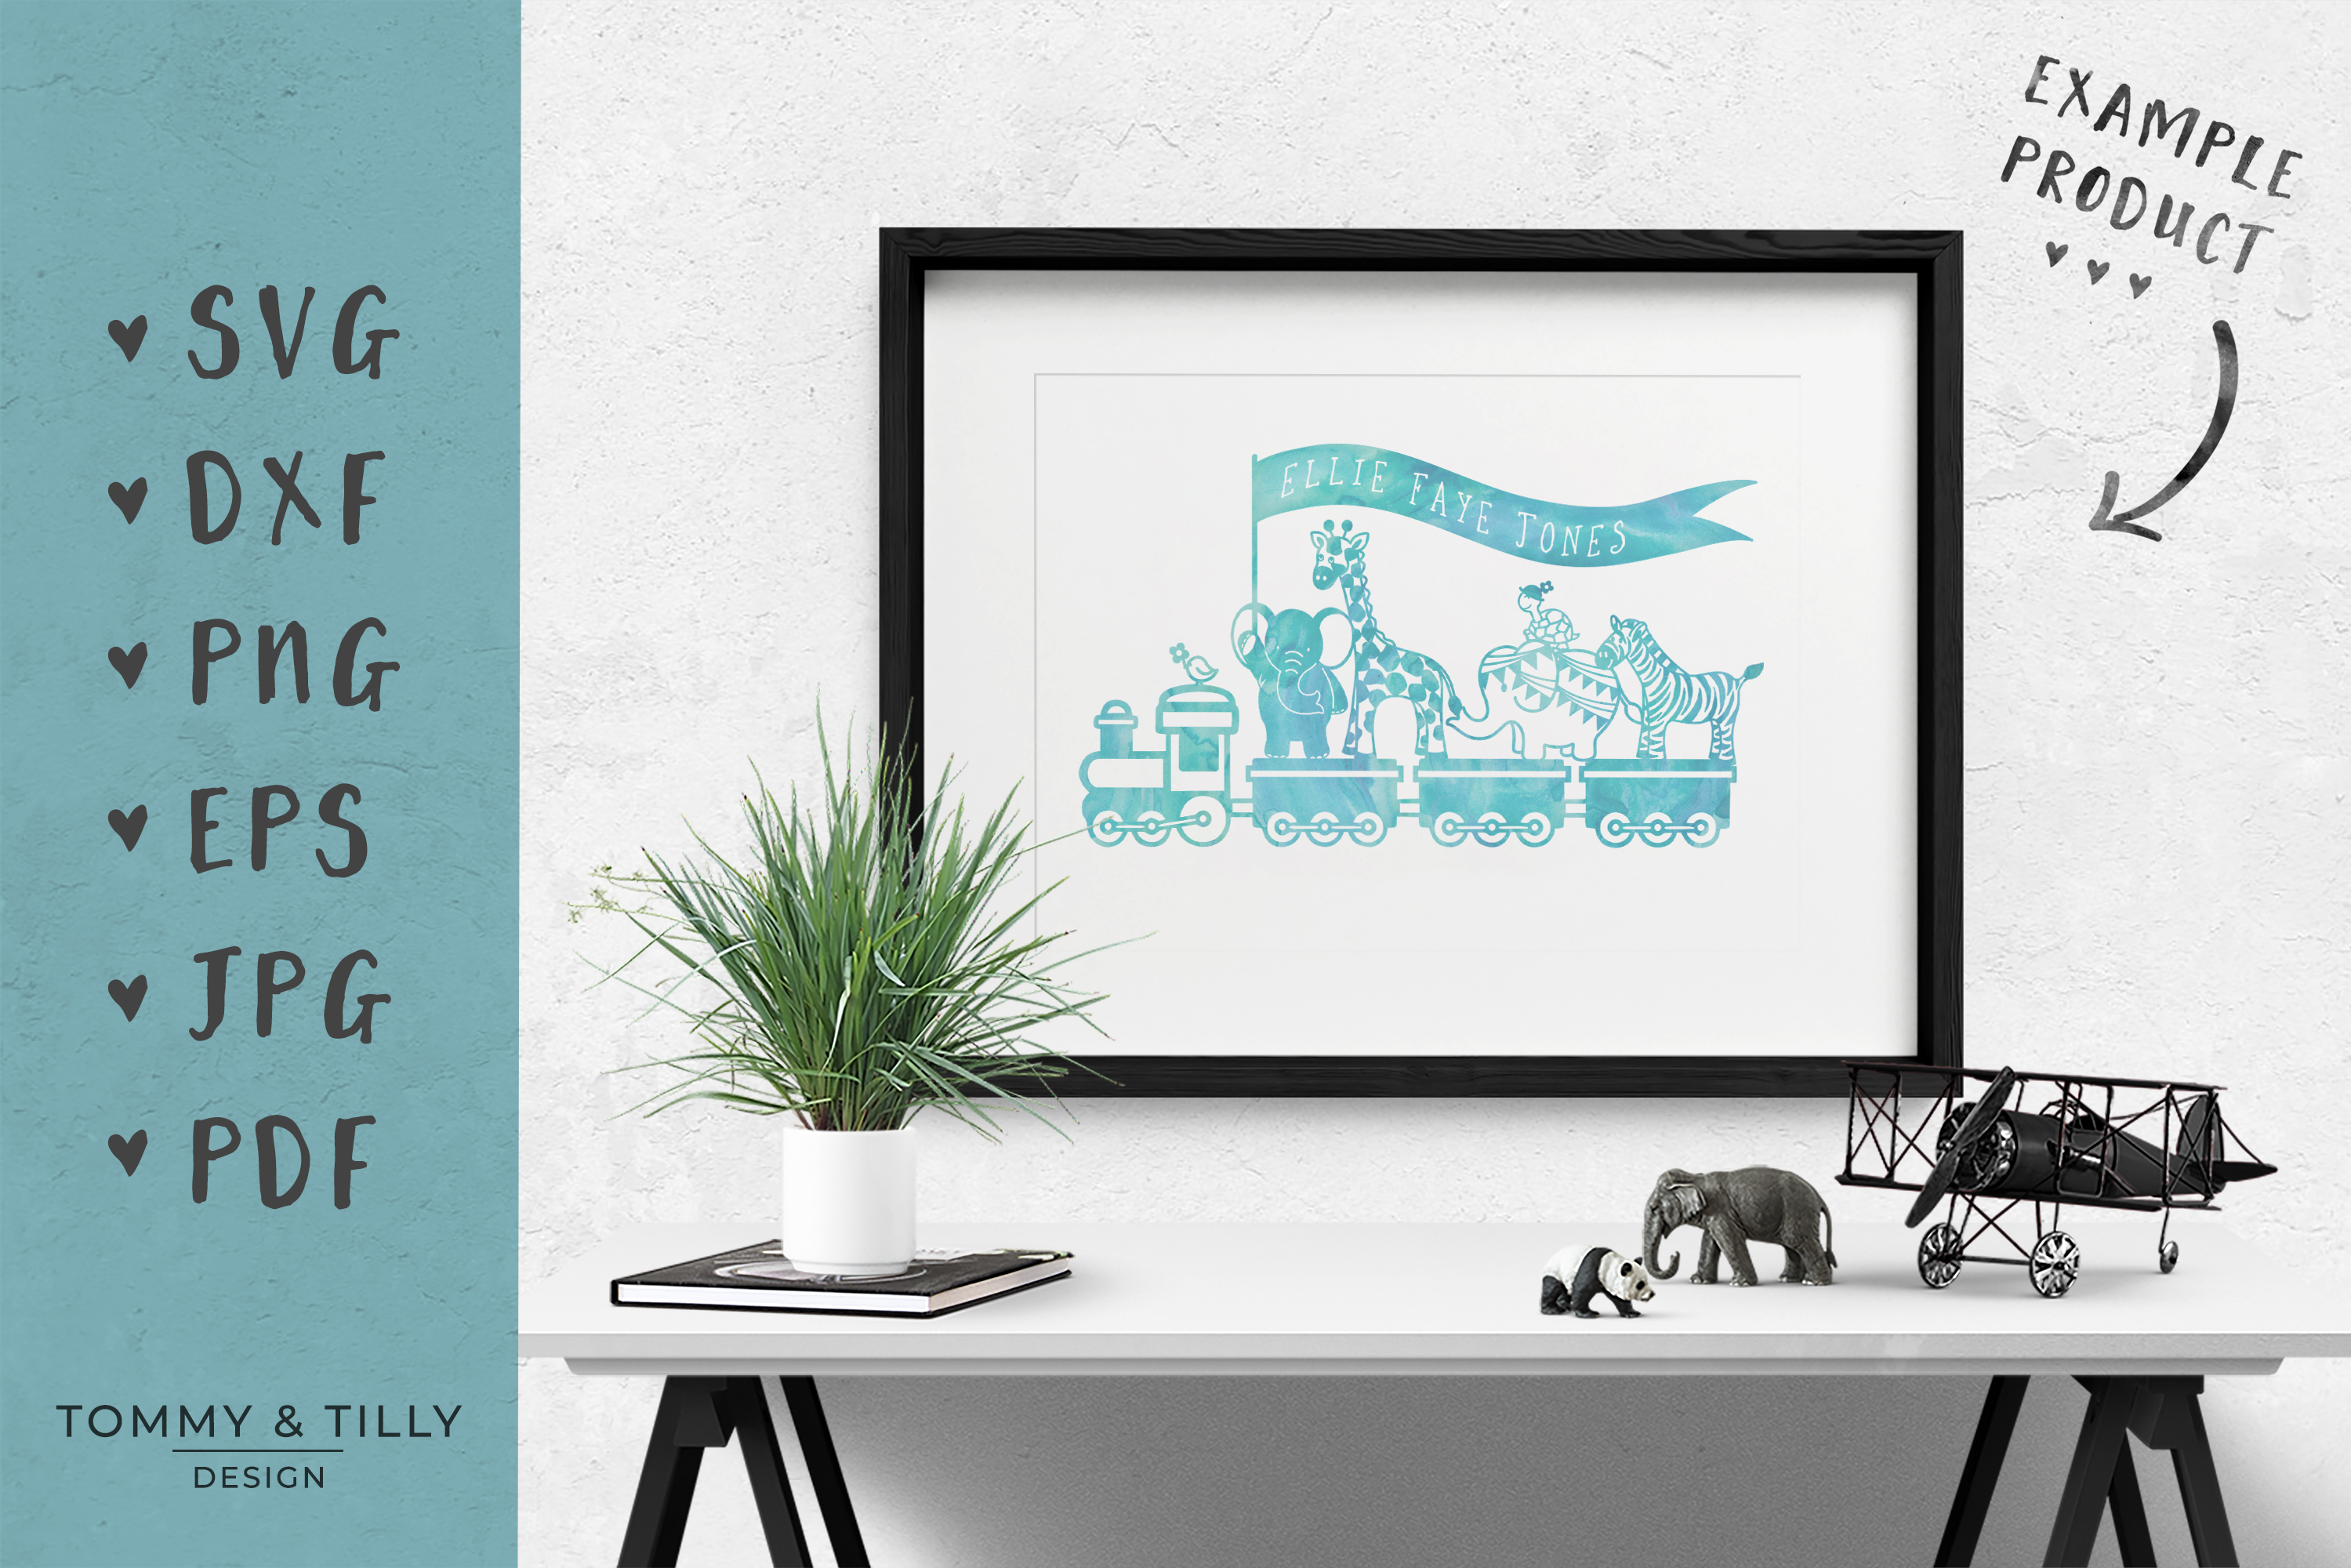 Animal Train - SVG DXF PNG EPS JPG PDF Cutting File example image 5